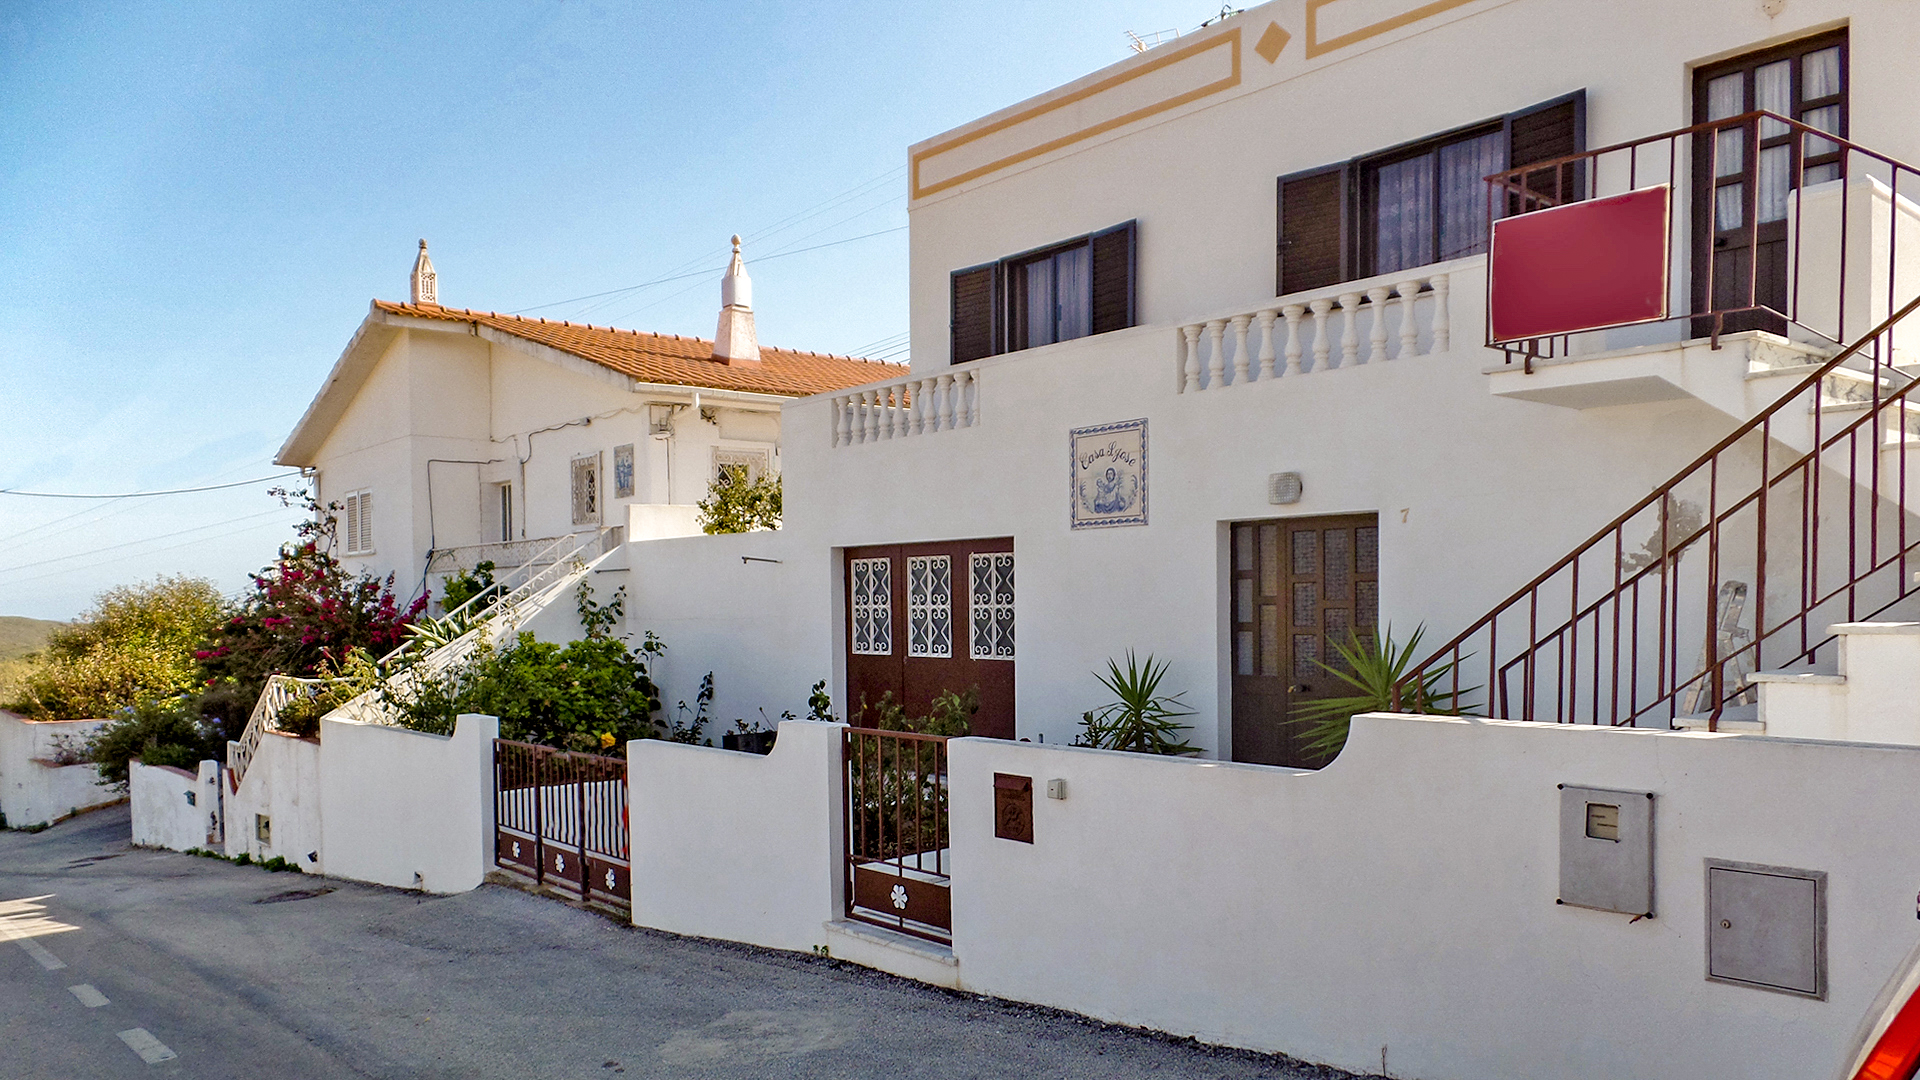 Two bedroom traditional villa, in a hamlet close to Zavial beach, West Algarve  | LG1177 Two bedroom fully furnished, traditional house with garage and flexible accommodation in a small, peaceful hamlet near Raposeira. Currently used as a summer home by the owners, this property has potential, for those wishing to live in or use as a holiday home due to its proximity to two of the Costa Vicentina's most beautiful beaches - Praia da Zavial and Praia da Ingrina.